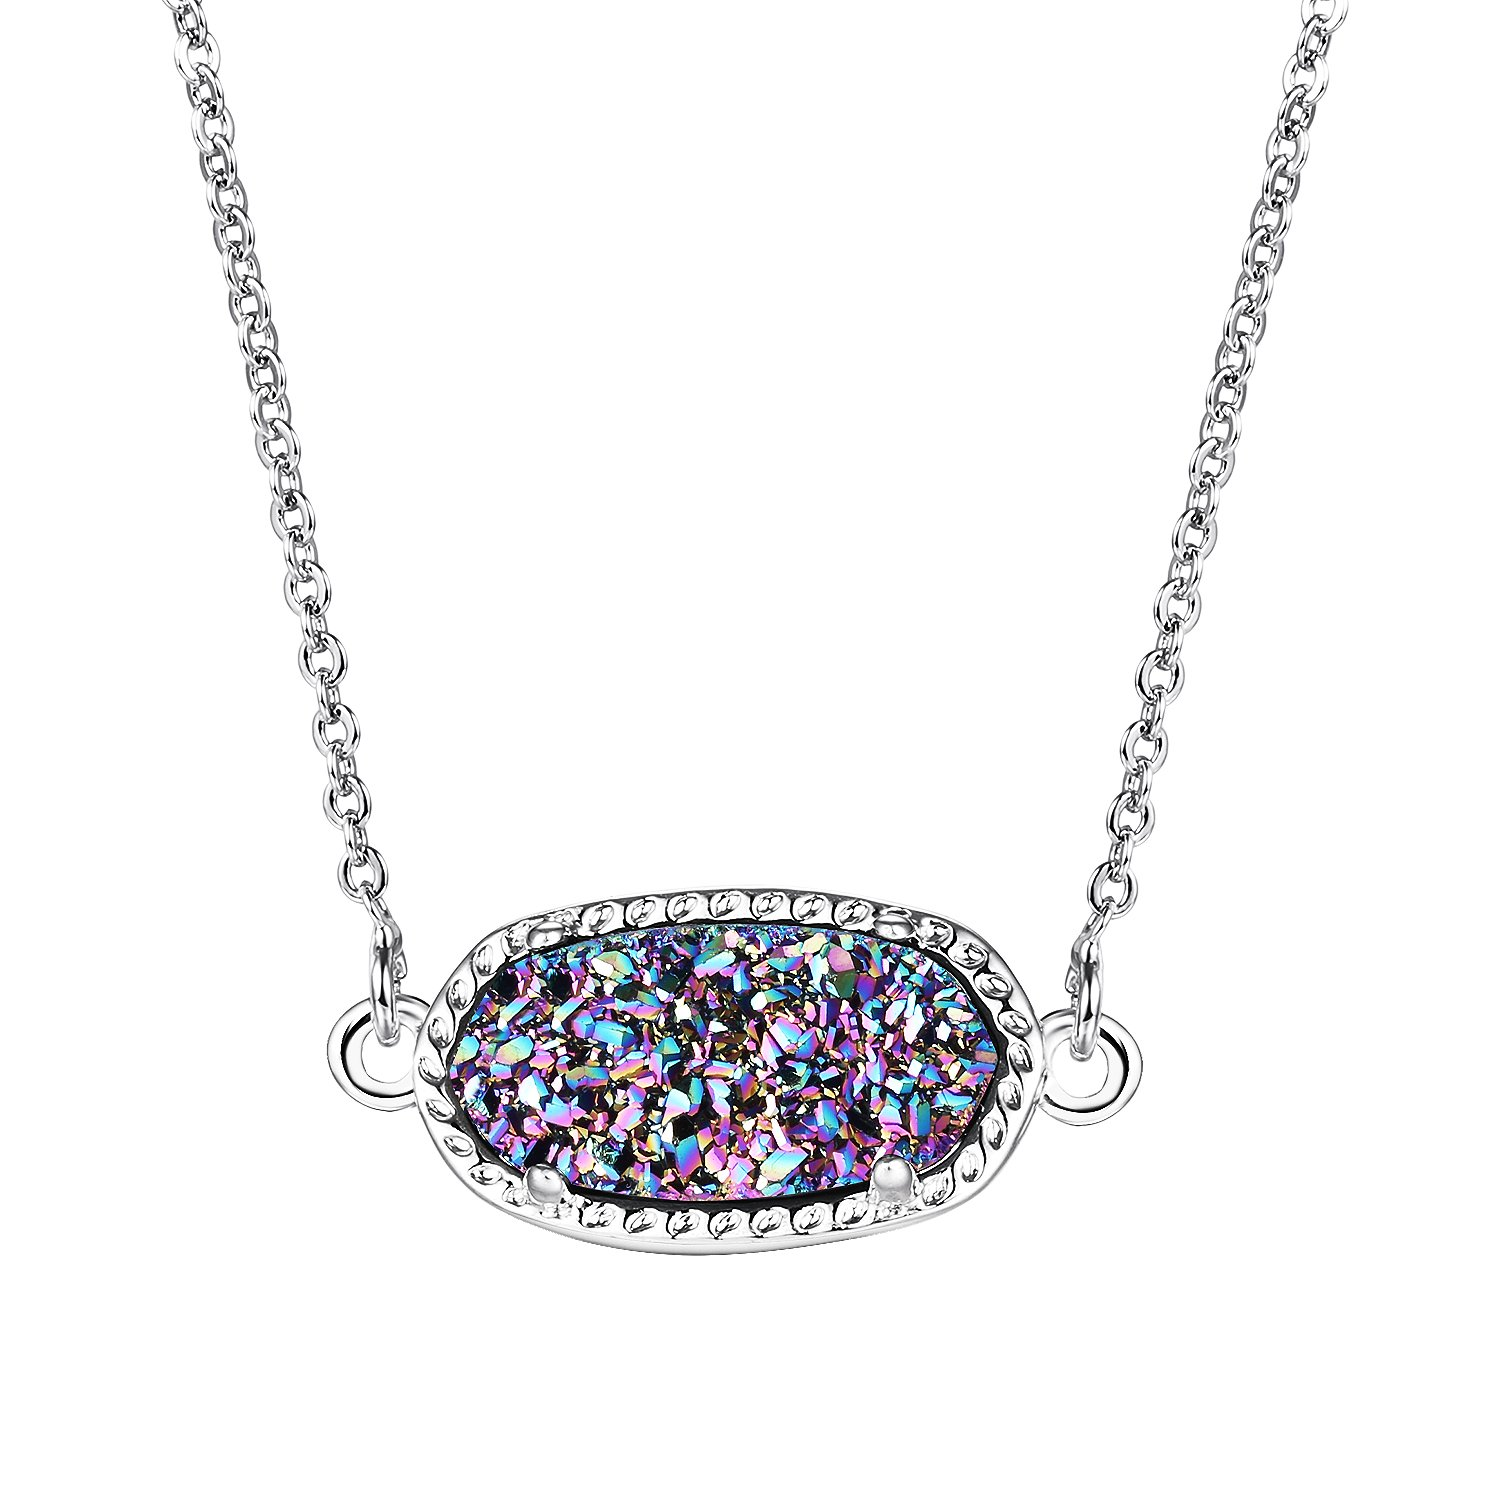 WISHMISS ''FAMILY'S LOVE Adjustable Chain Necklace in Natural Multi-color Druzy for Mother &Daughter with Card and Gift Box, Rare Gift Idea for Women